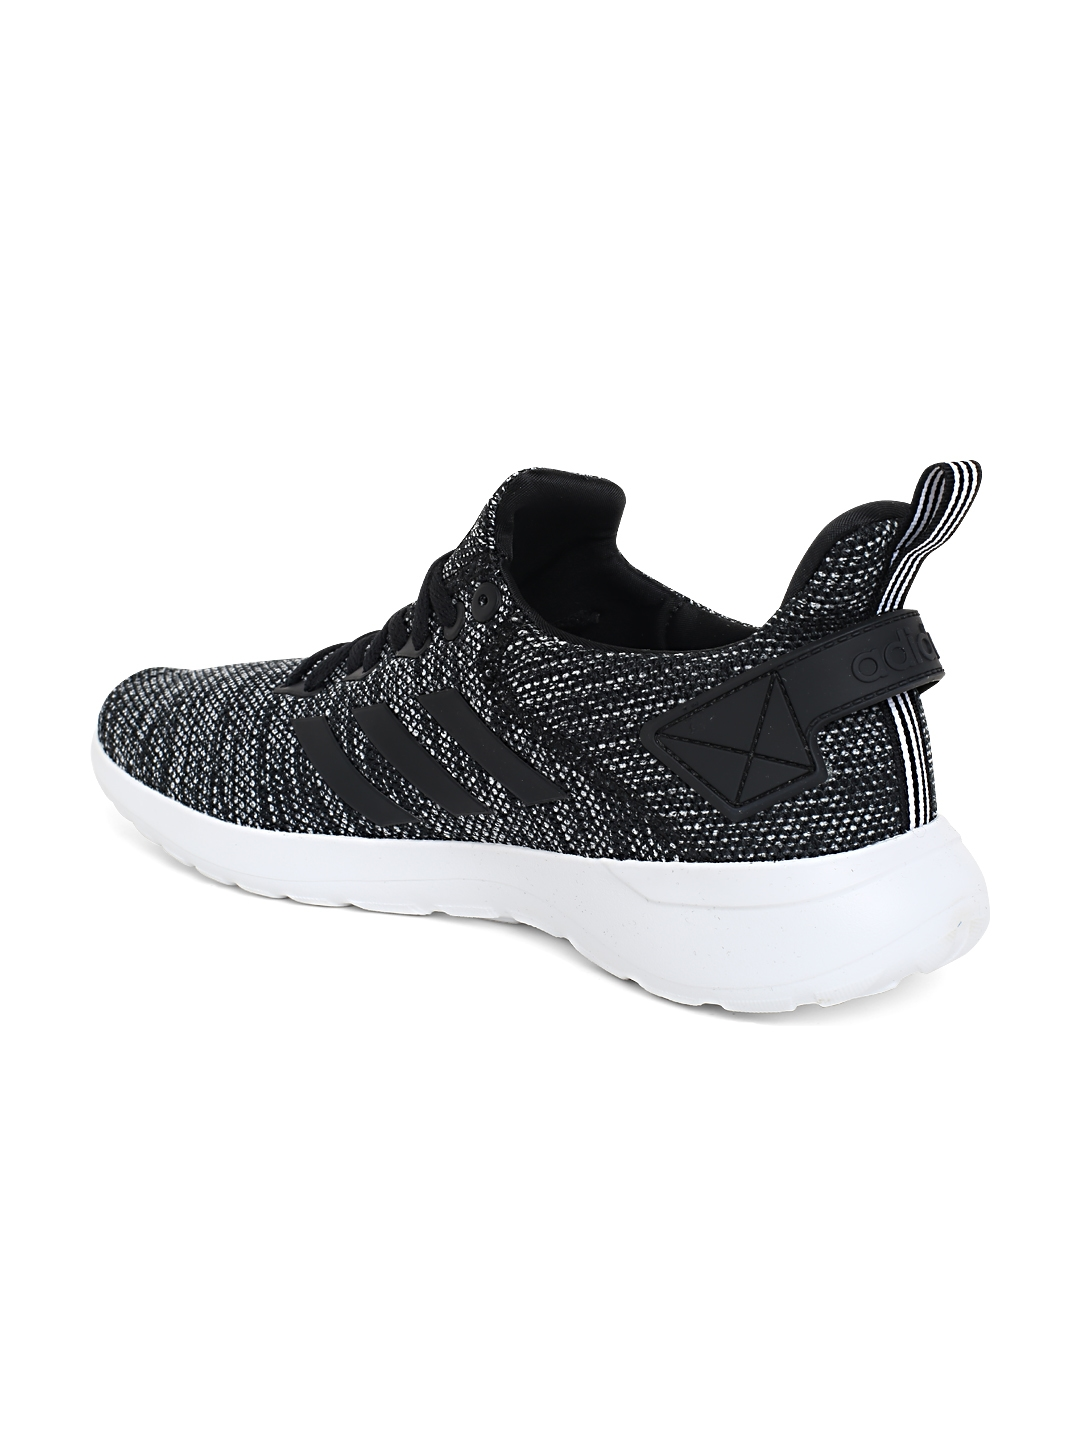 Buy ADIDAS Men Black   Grey Lite Racer Byd Running Shoes - Casual ... cc5a57bf6